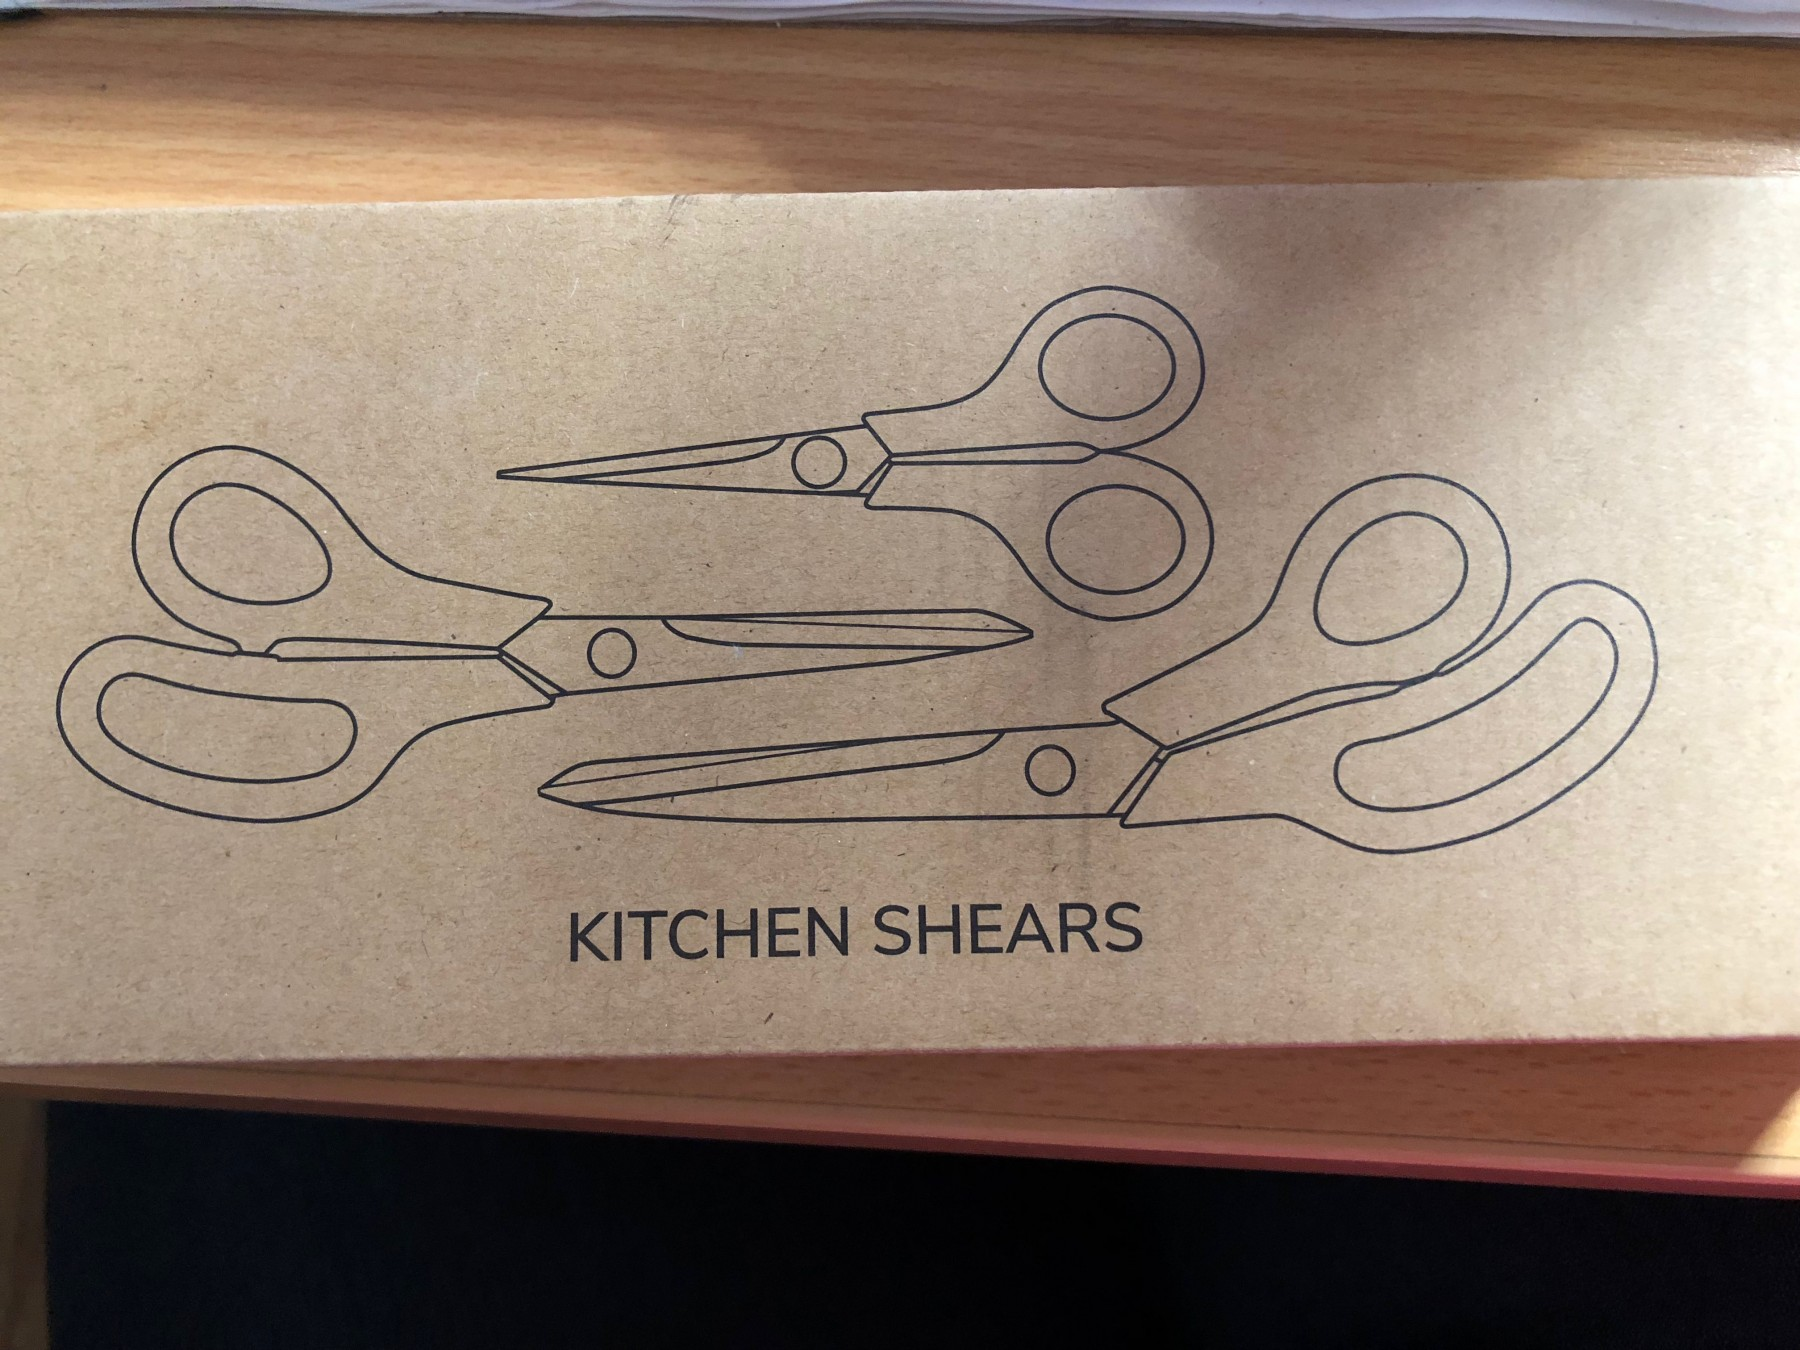 Great Set of Scissors